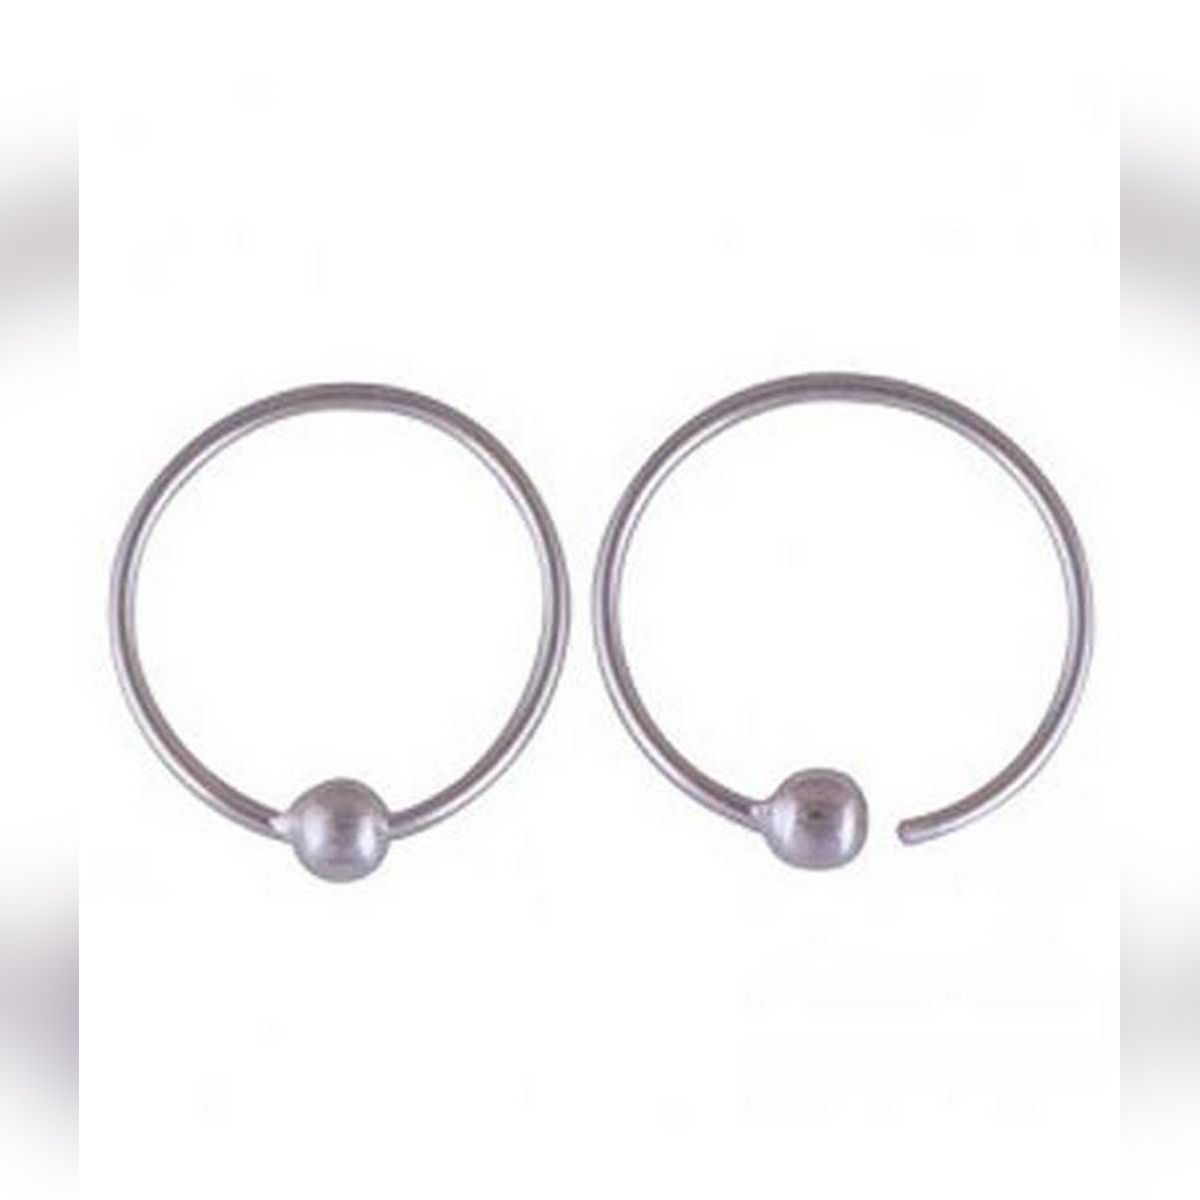 Silver (Chandi) Hoop Earrings with gift box (Delicate silver)(For daily use)(Small hoop earring)(Pure silver)